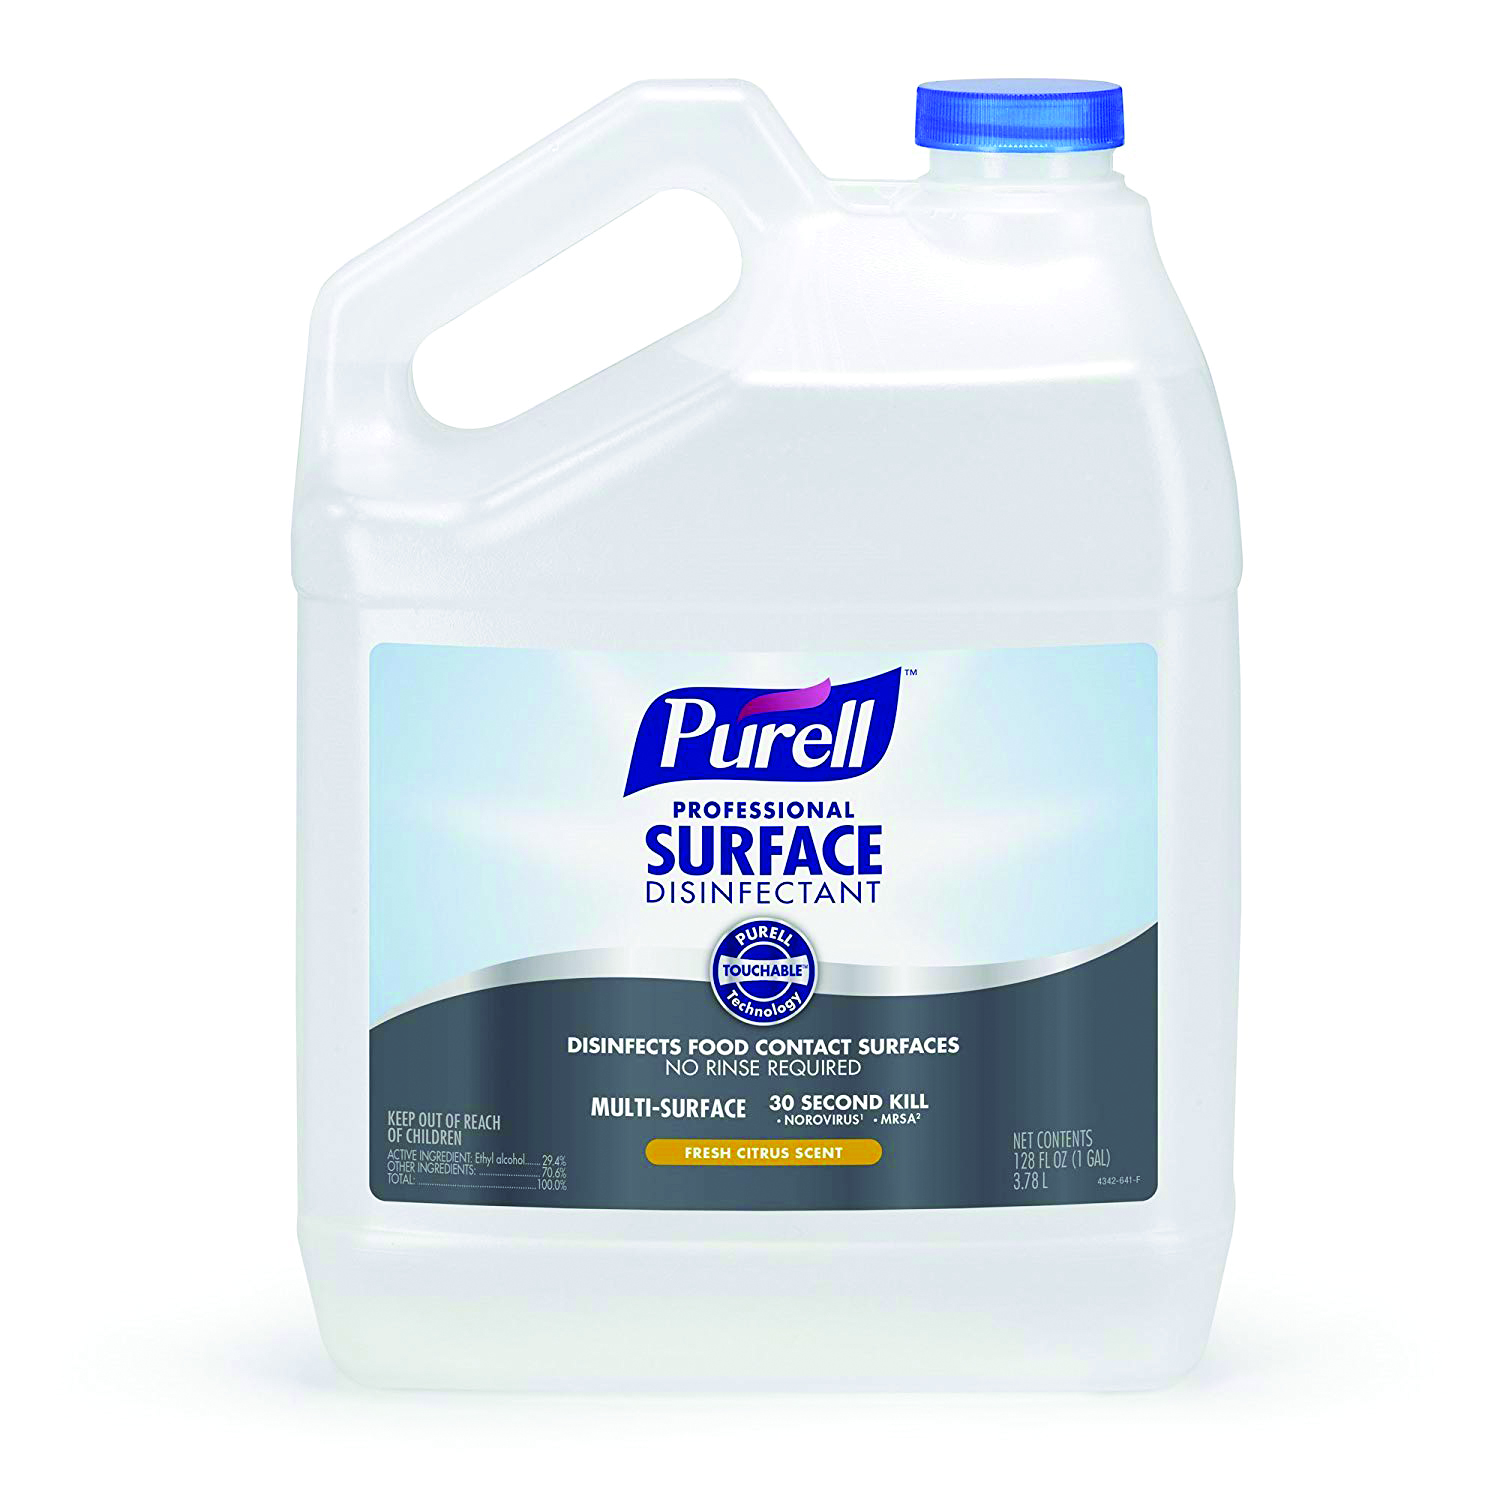 4342-04 - PURELL® Professional Surface Disinfectant-1 Gallon RTU refills-----UOM: 4/CS